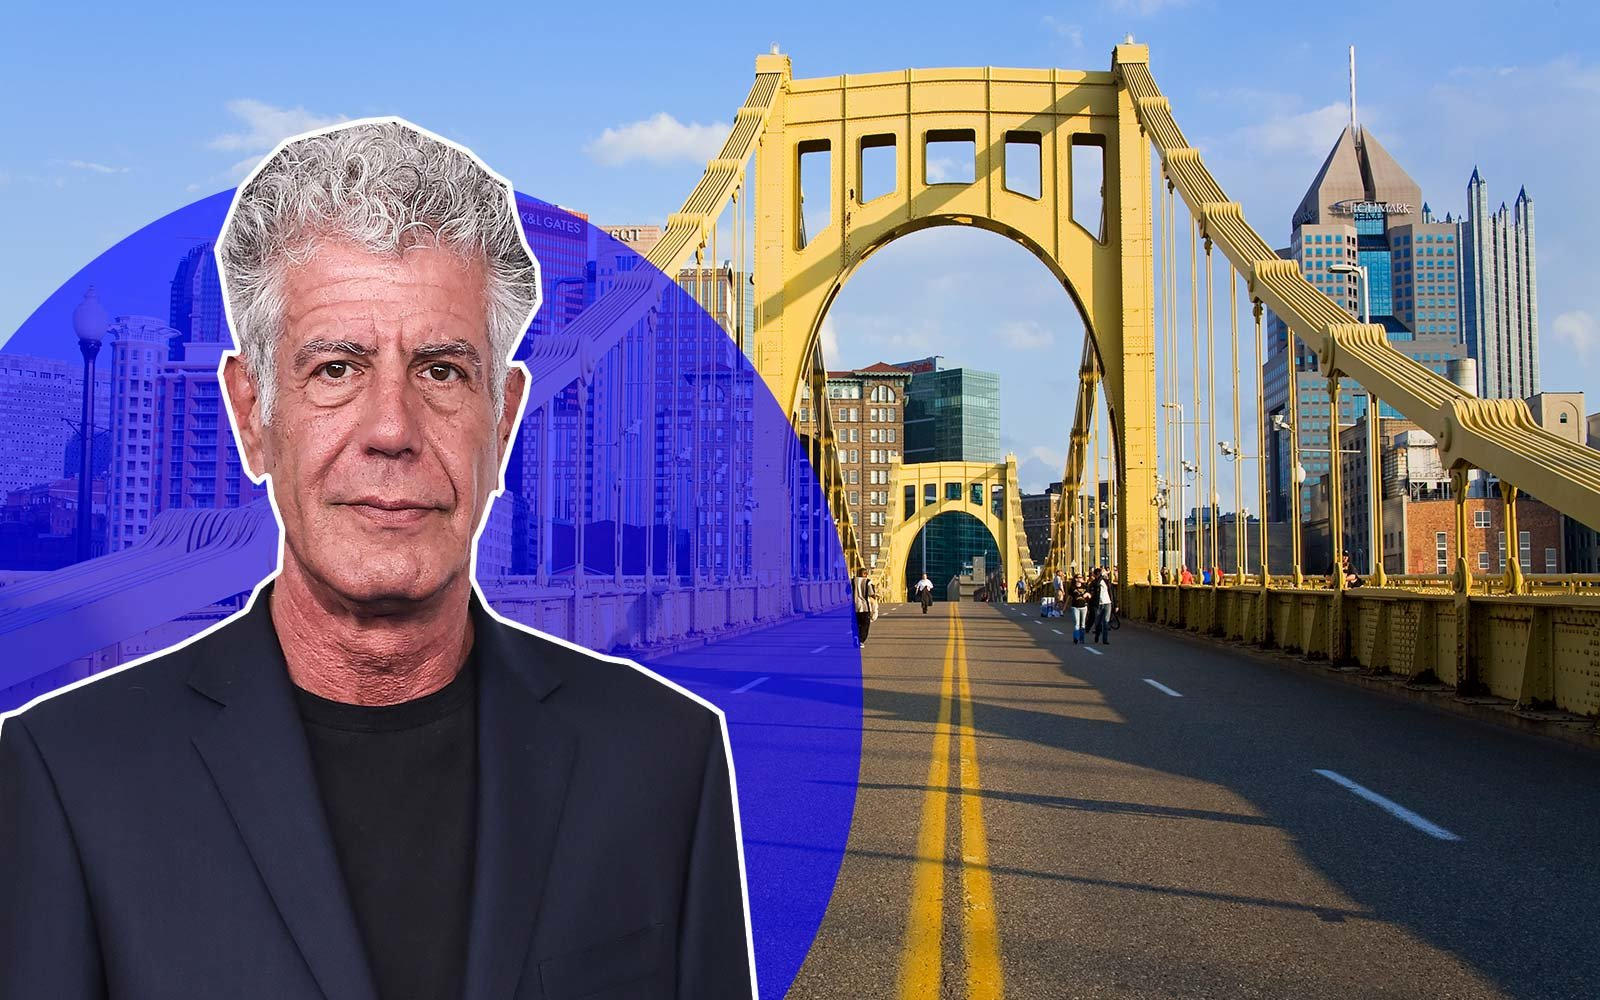 Anthony Bourdain Squirrel Hill Cafe Pittsburgh, Pennsylvania